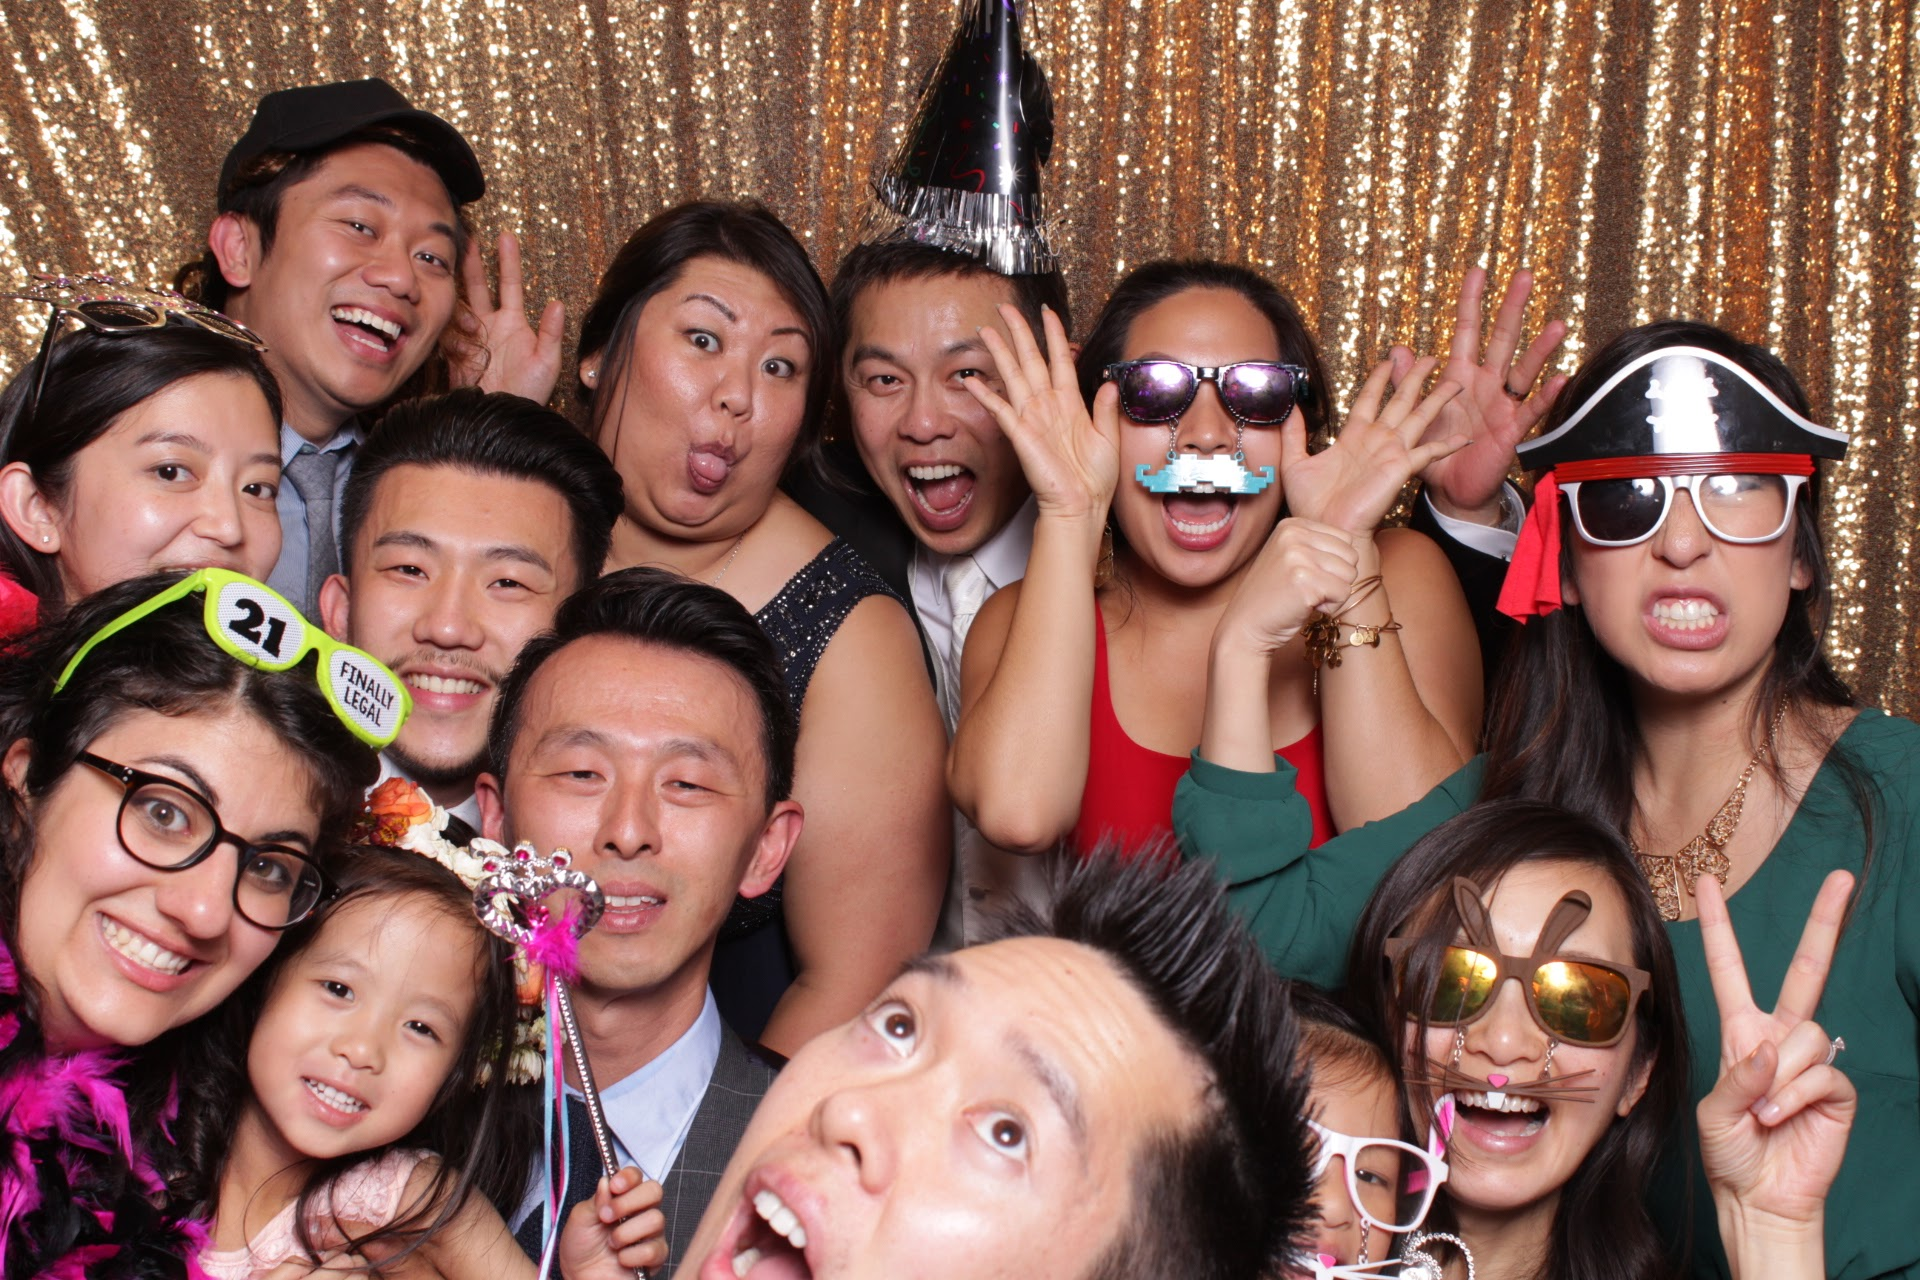 Let's fit everyone in the photobooth! #wedding, #familyphotos